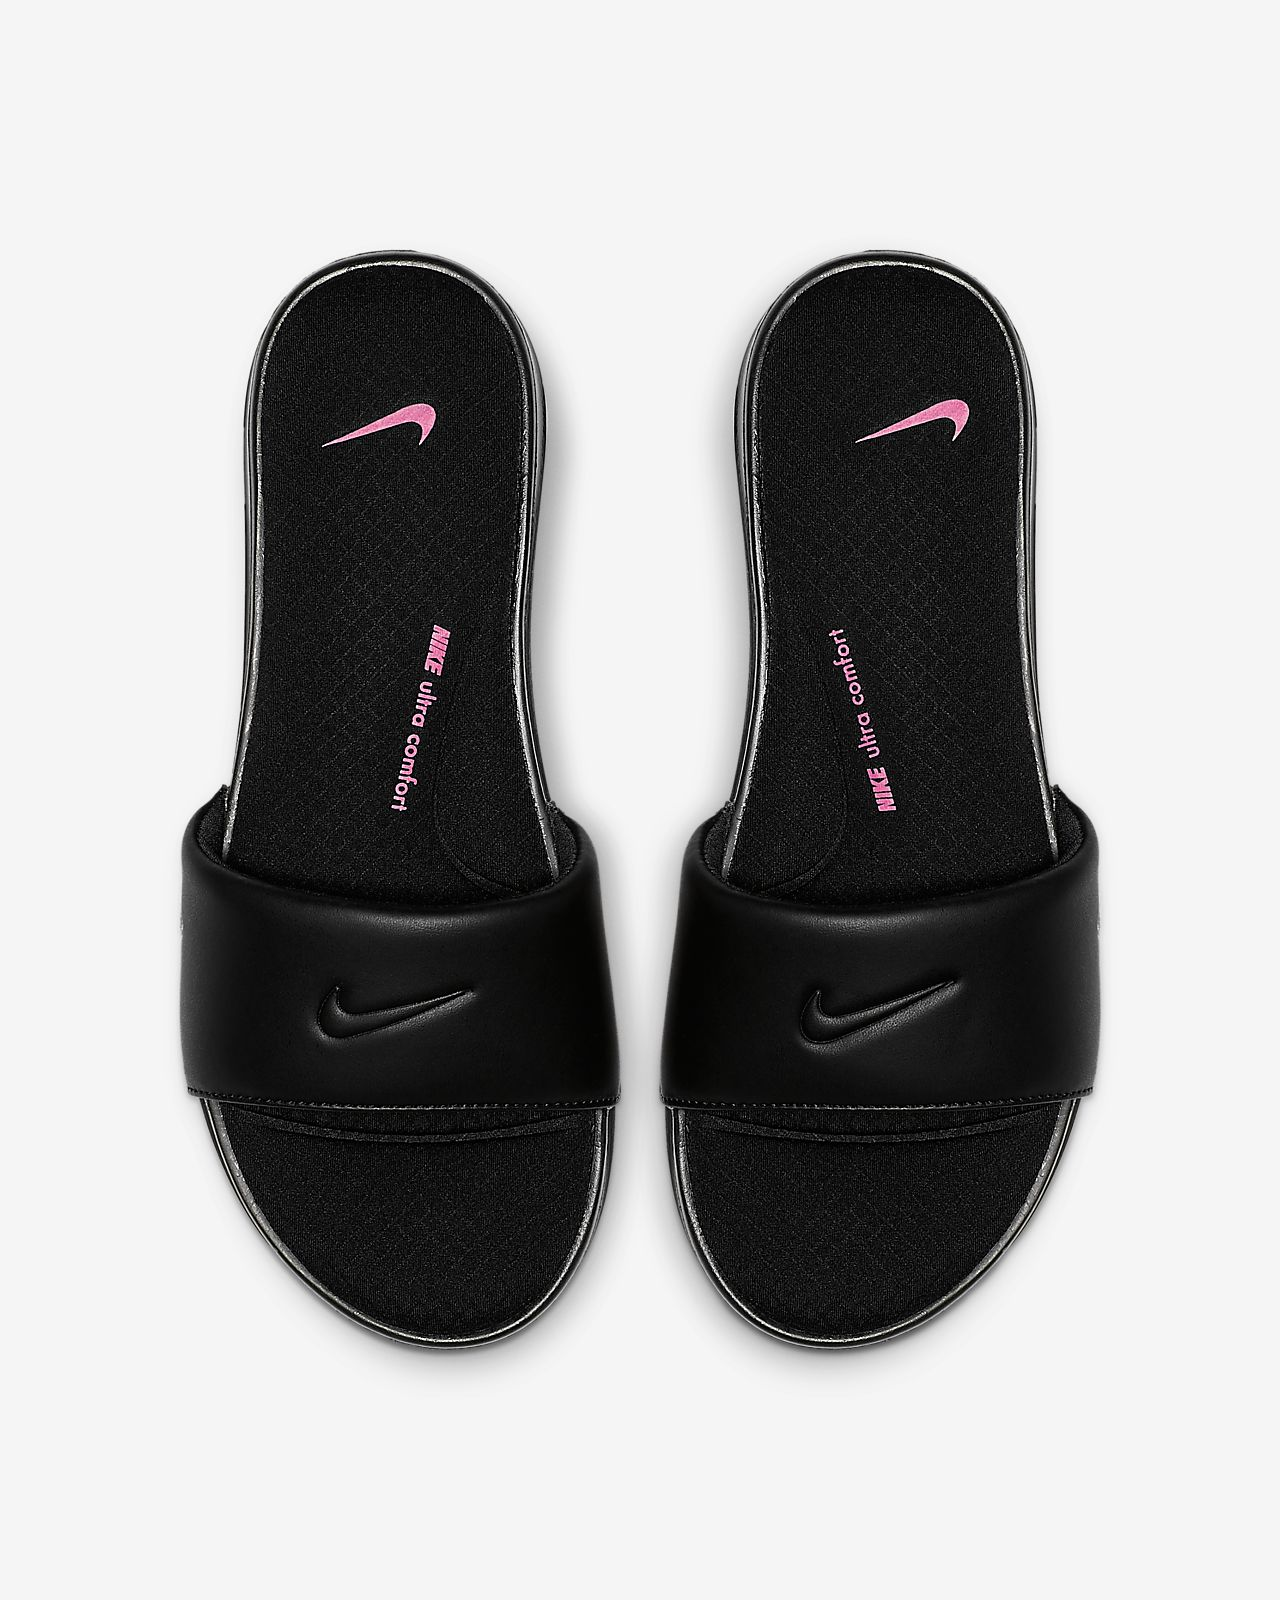 Nike Ultra Comfort 3 Women's Slide